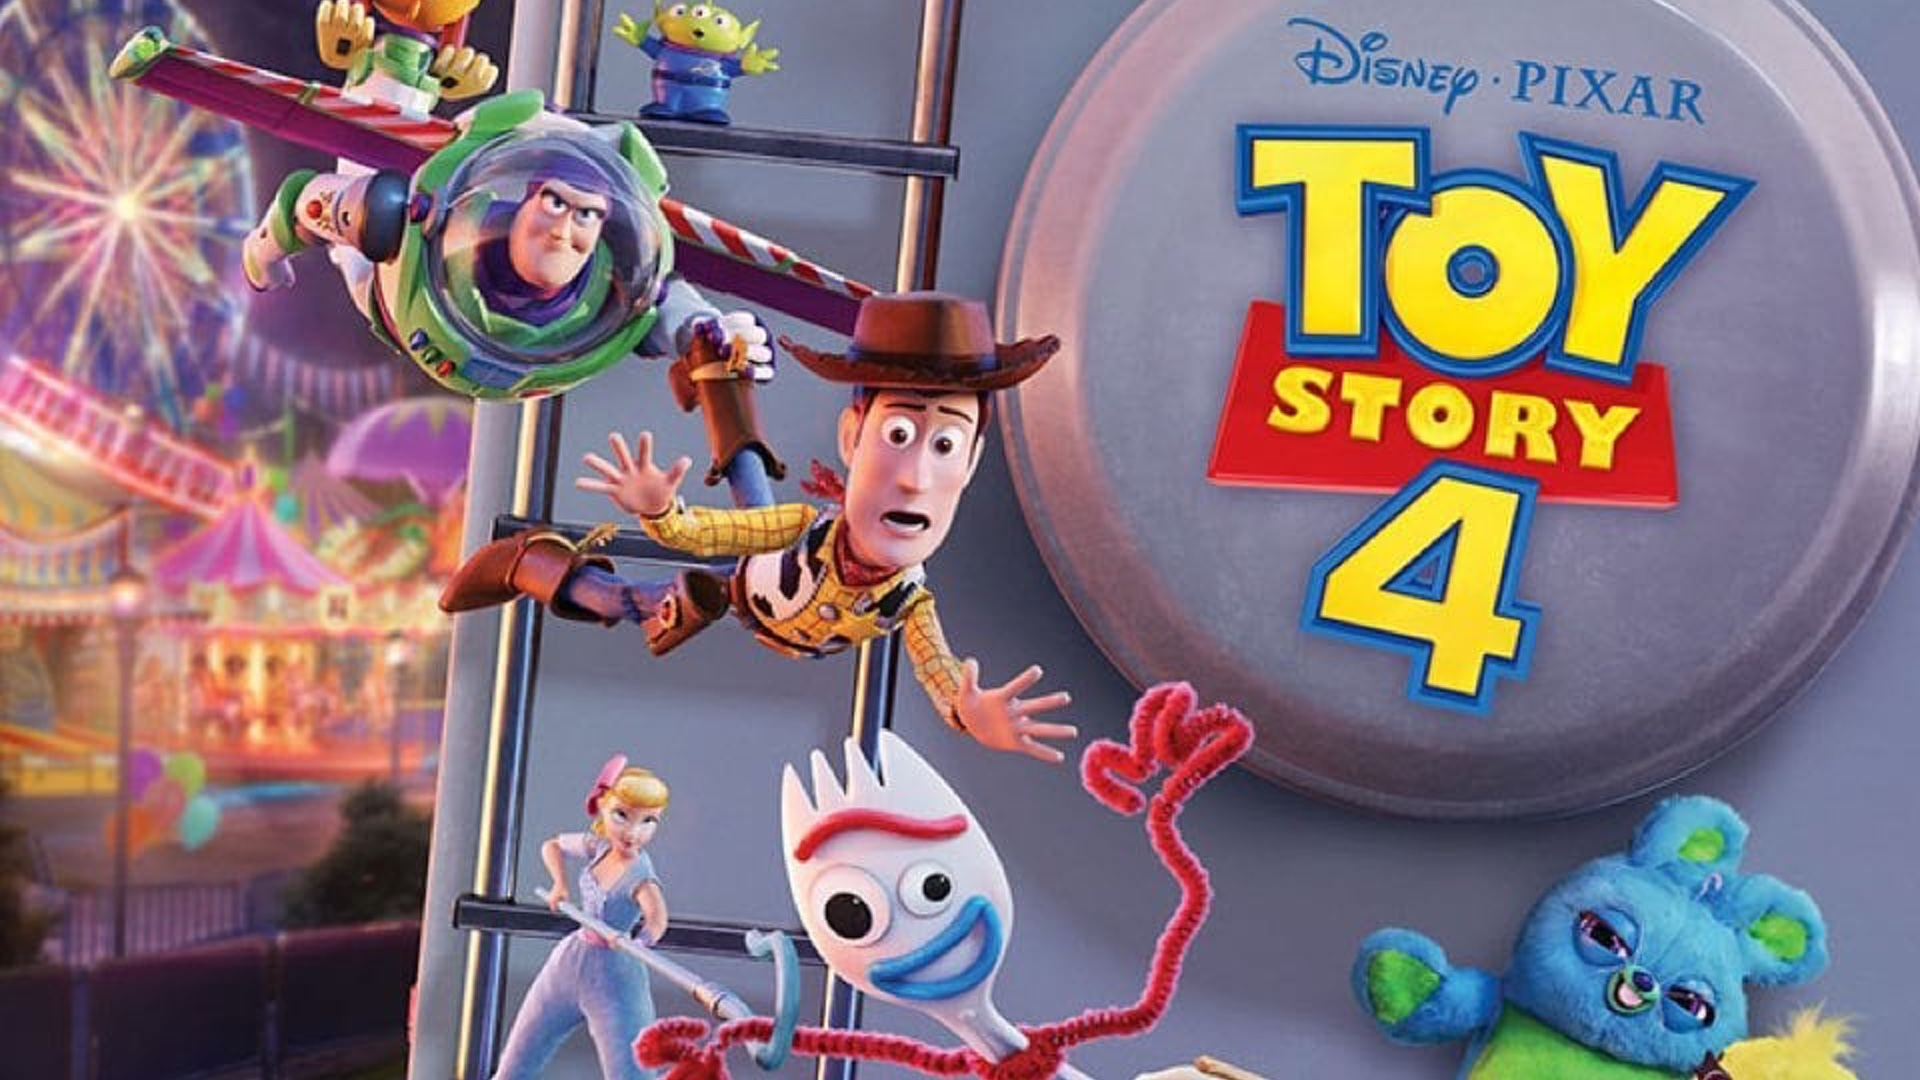 TOY STORY 4 Gets a New Trailer with More Footage a Poster and 1920x1080